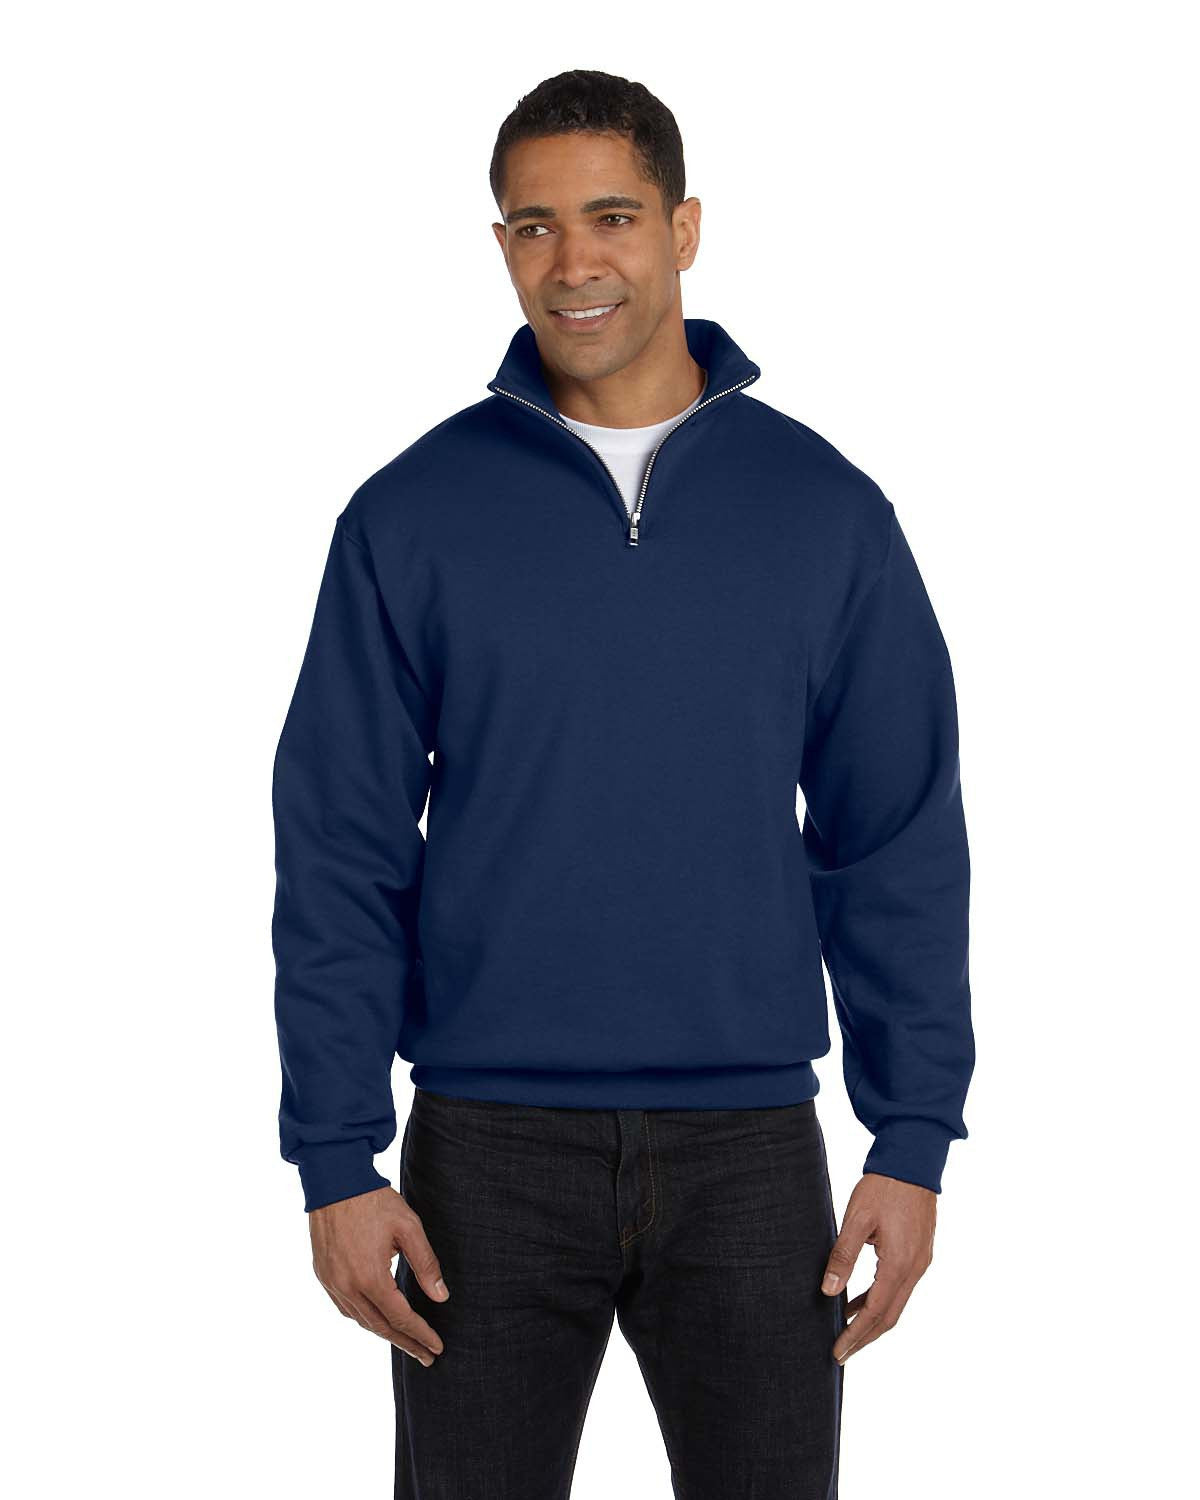 LW SWAG Navy Jerzees Adult 8 oz. NuBlend® Quarter-Zip Cadet Collar Sweatshirt